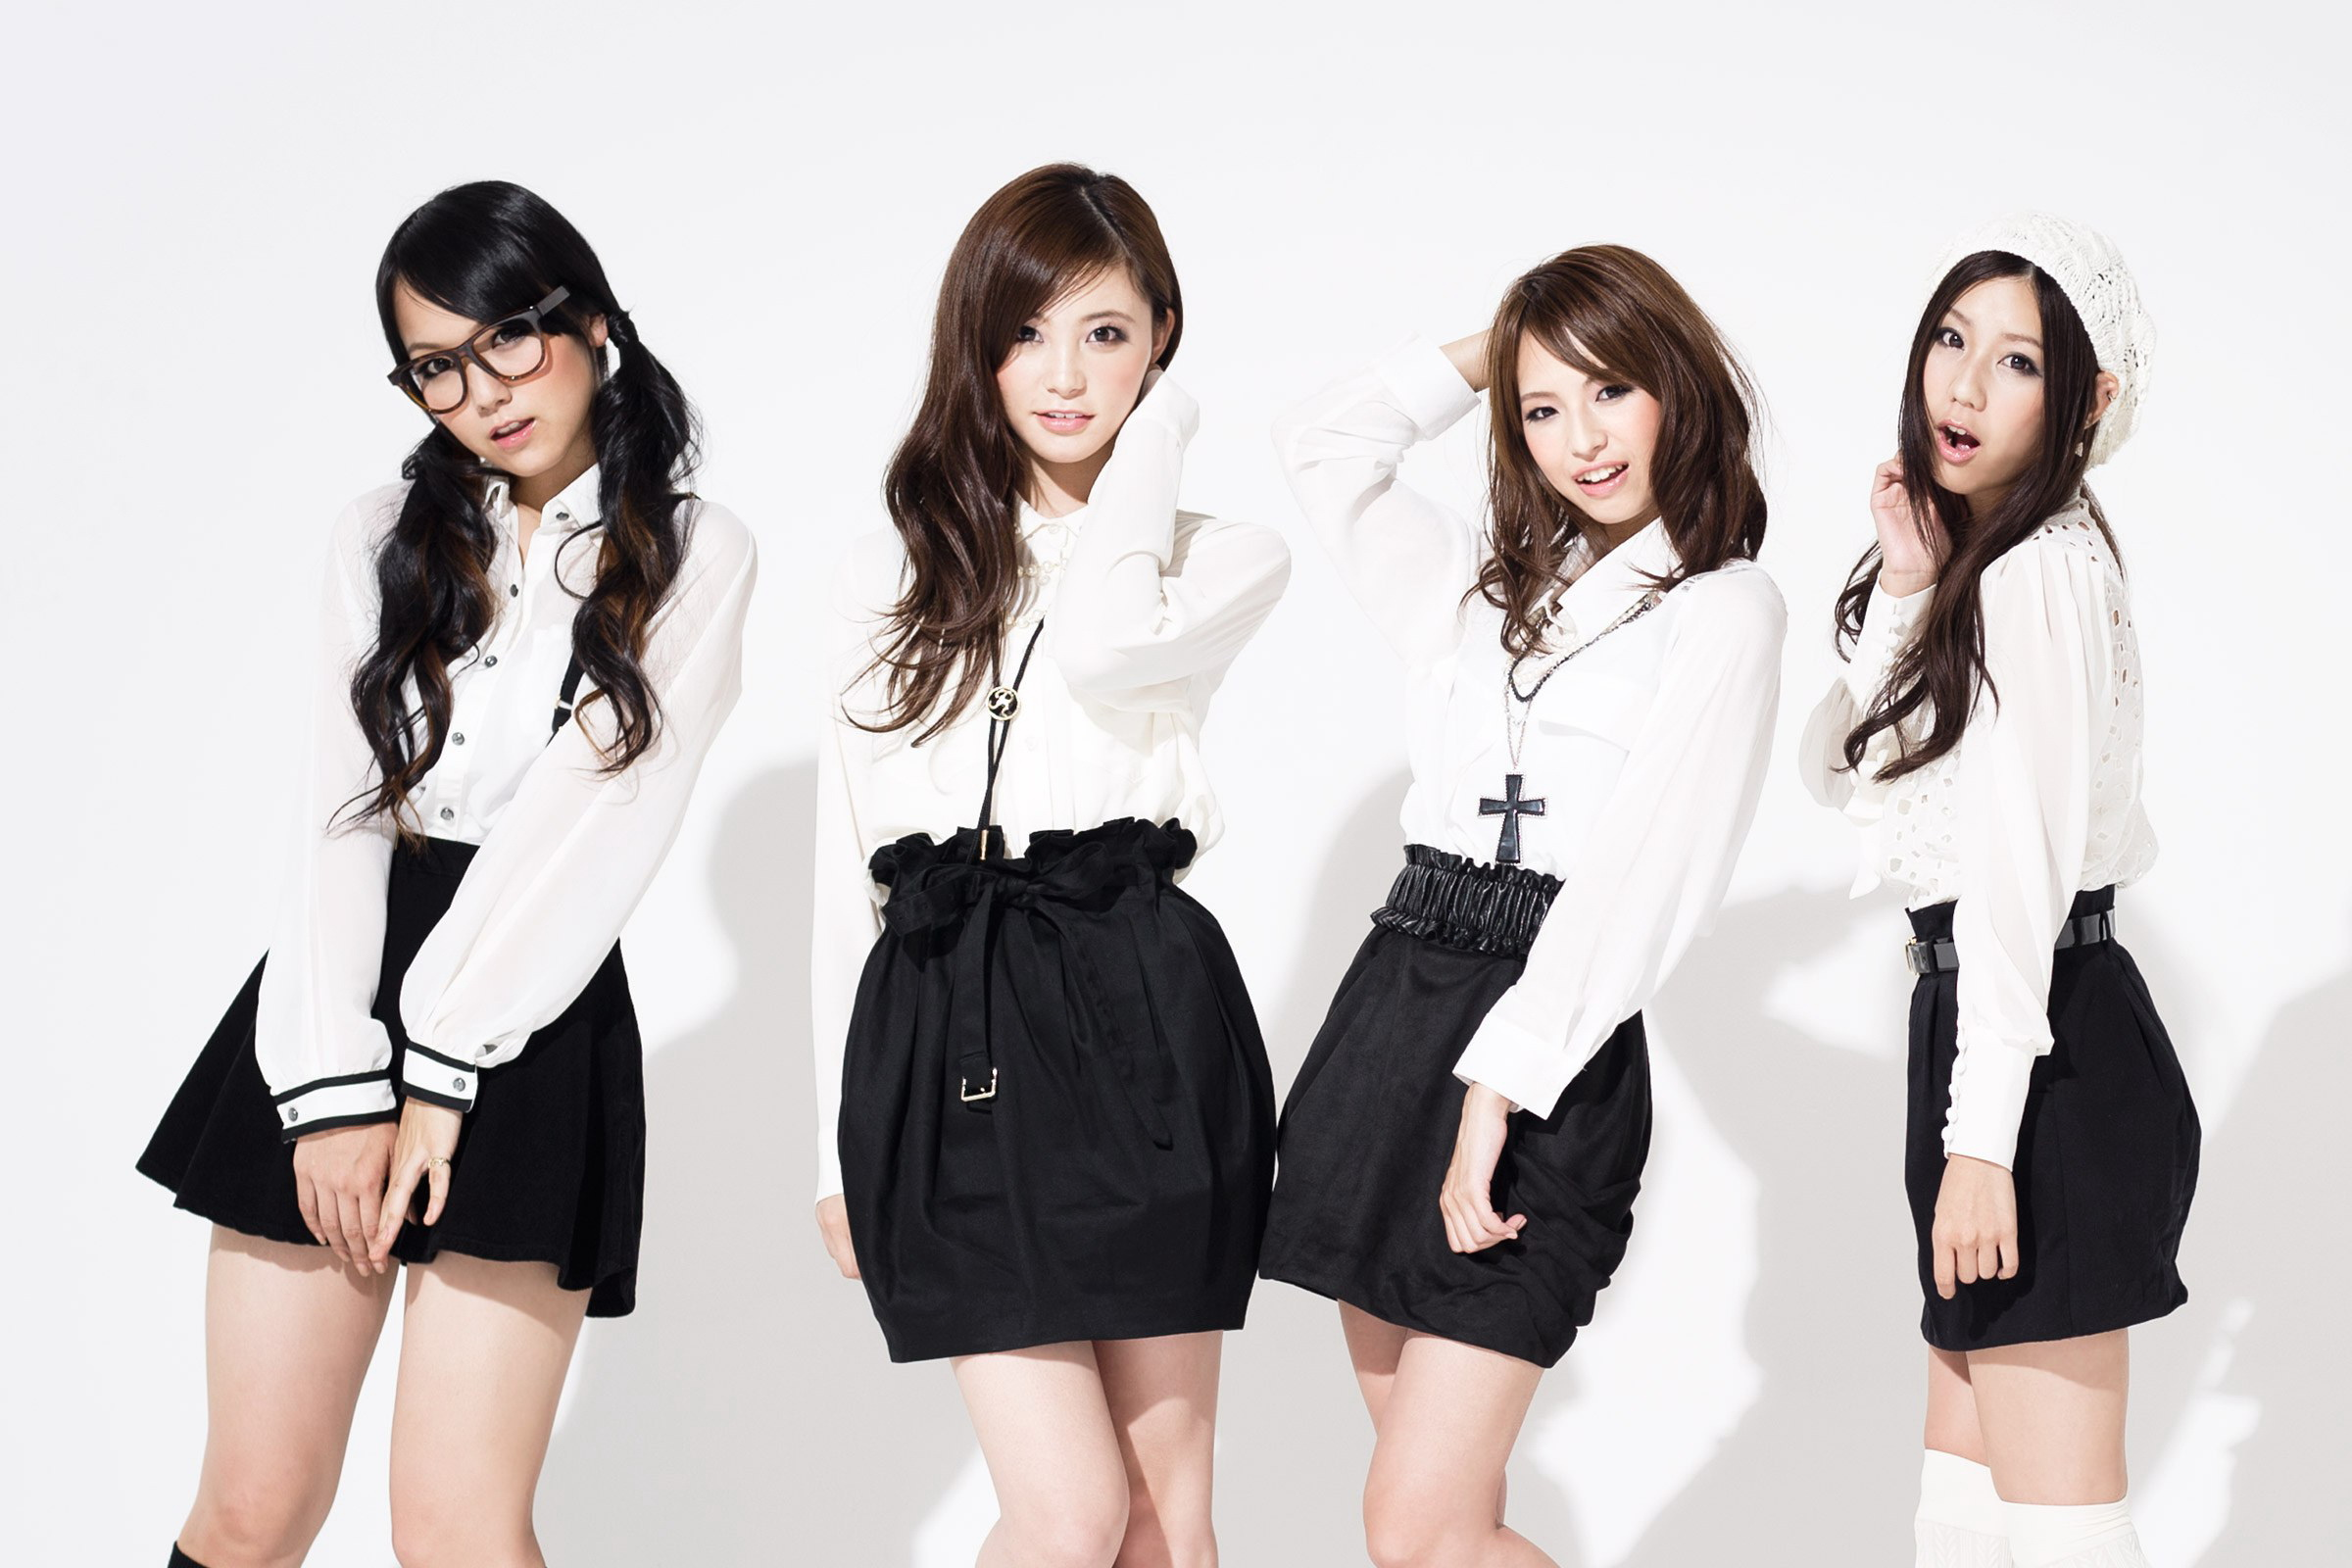 scandal japanese band wallpaper   wallpapersafari